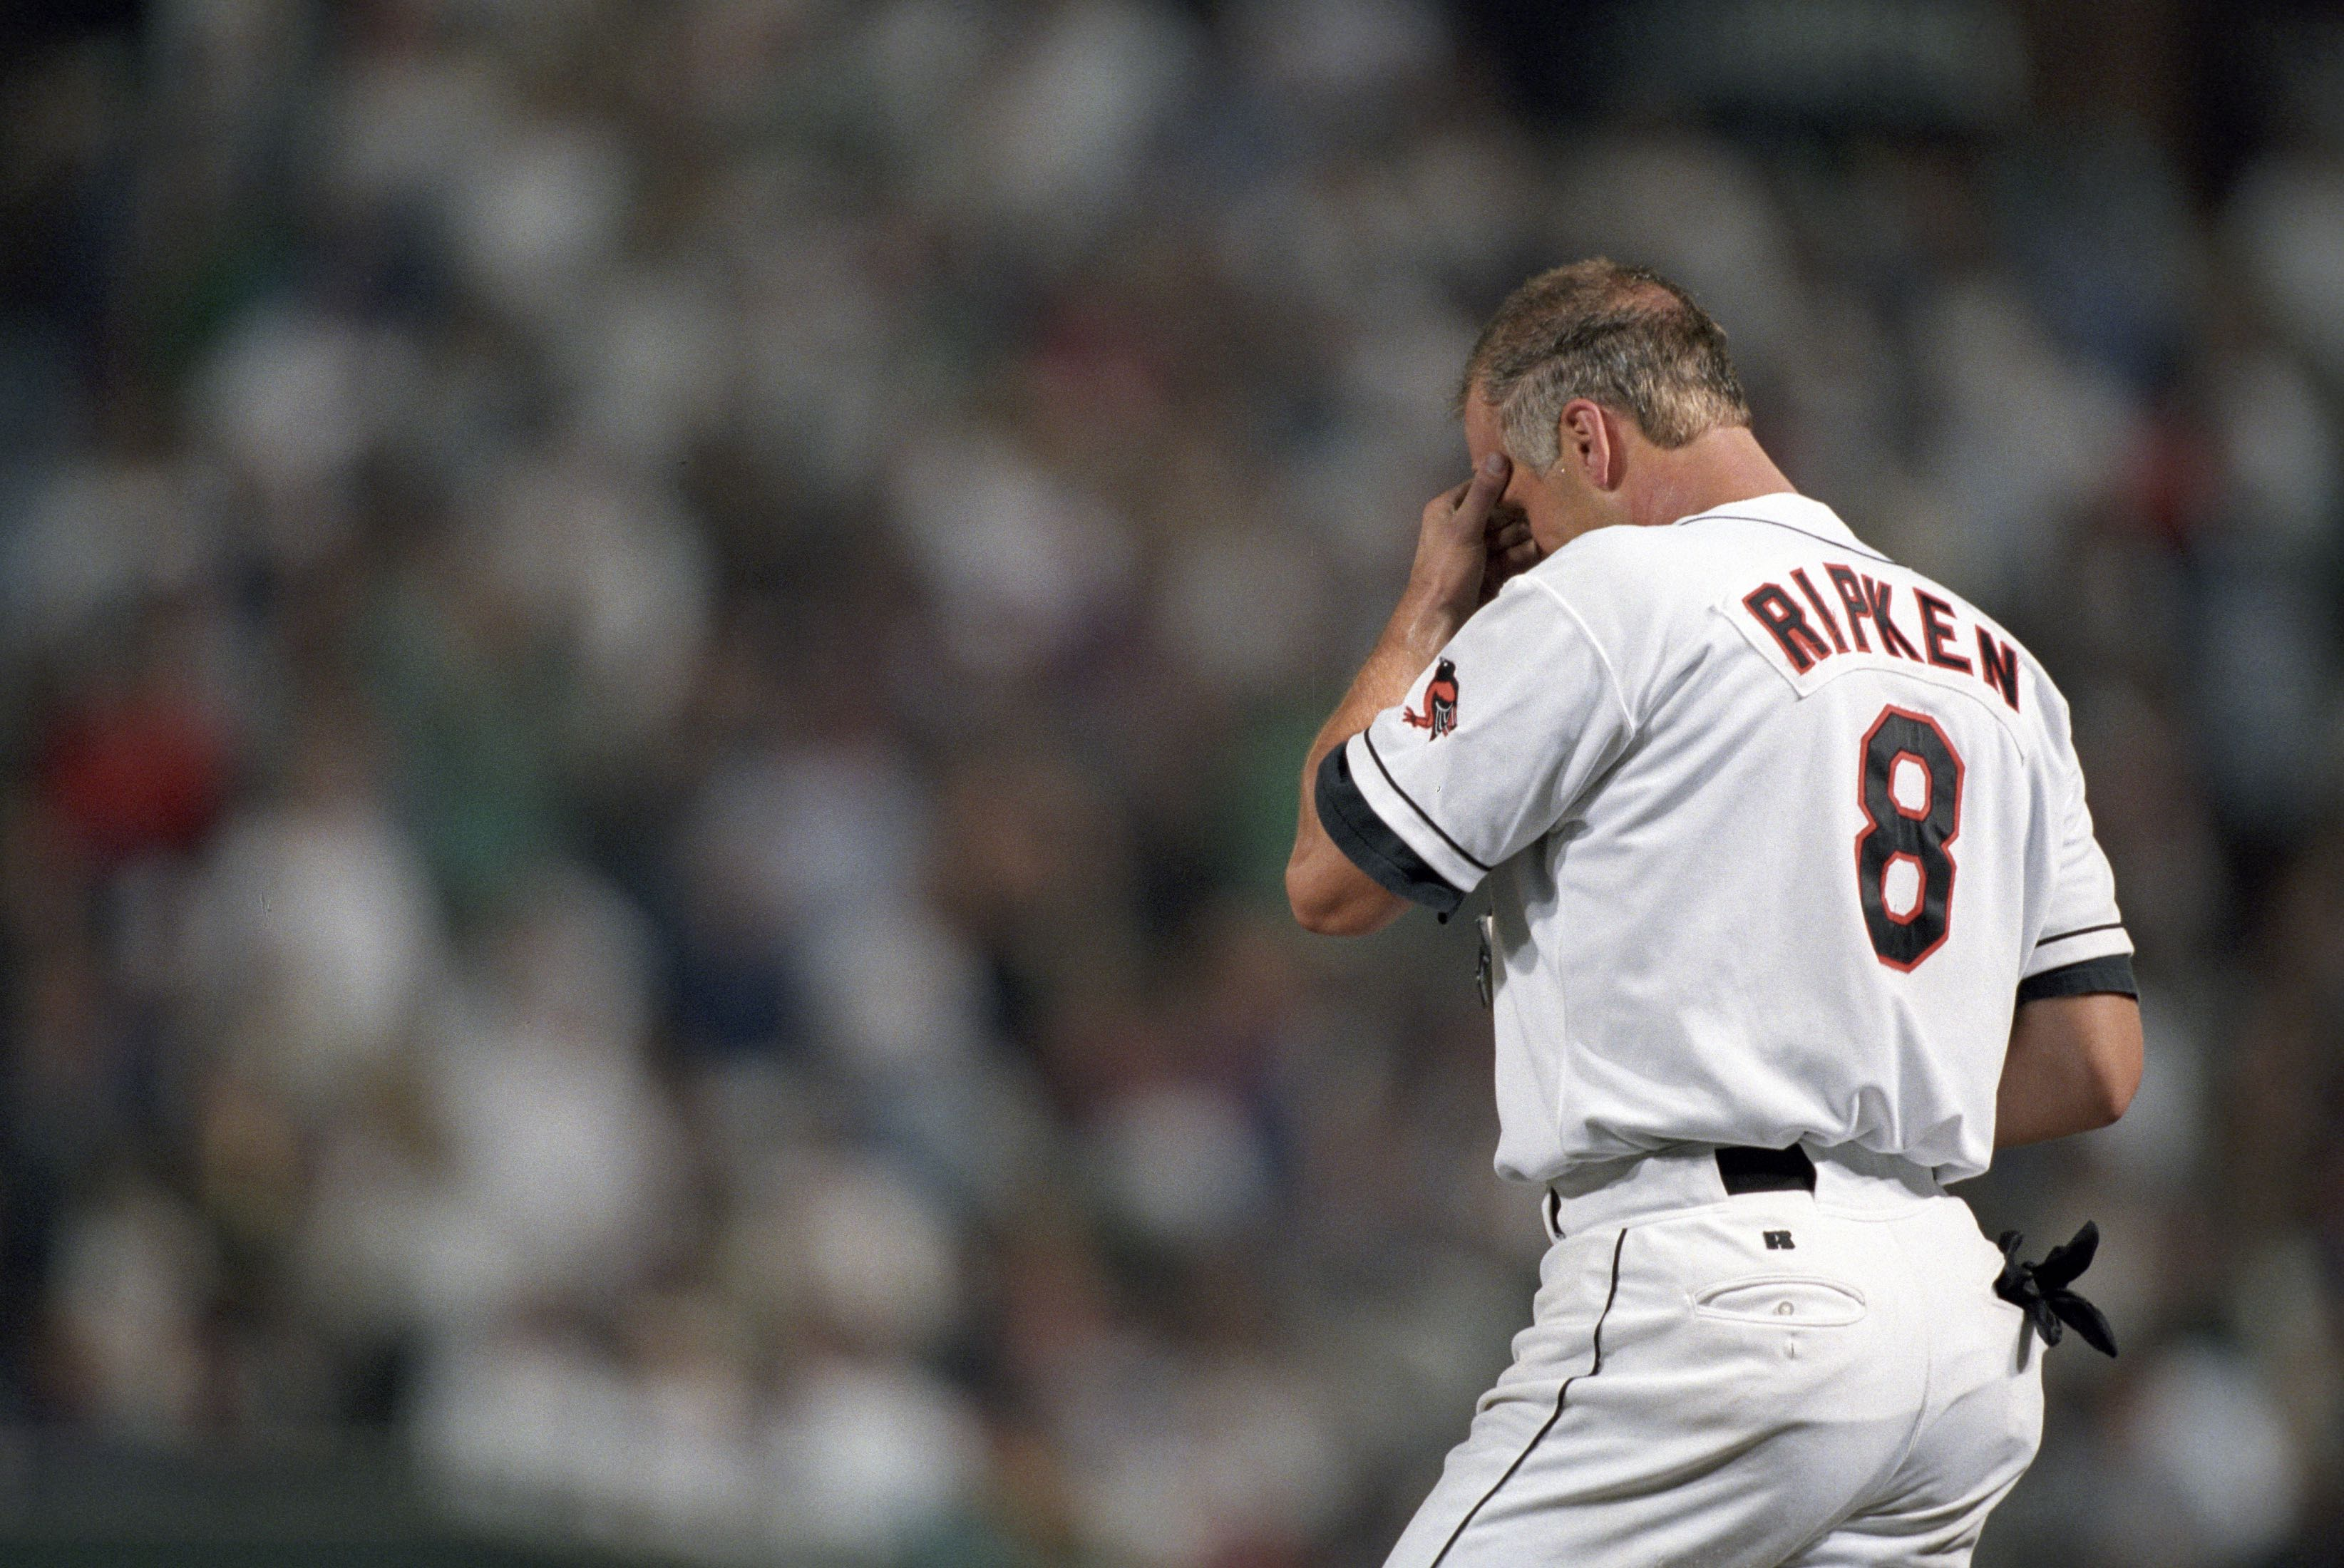 Baseball: Rear view of Baltimore Orioles Cal Ripken Jr. (8) crying during ceremony after breaking consecutive game streak during game vs California Angels. Baltimore, MD 9/6/1995 CREDIT: Walter Iooss Jr. (Photo by Walter Iooss Jr. /Sports Illustrated/Getty Images) (Set Number: X49092 TK3 R10 F12 )